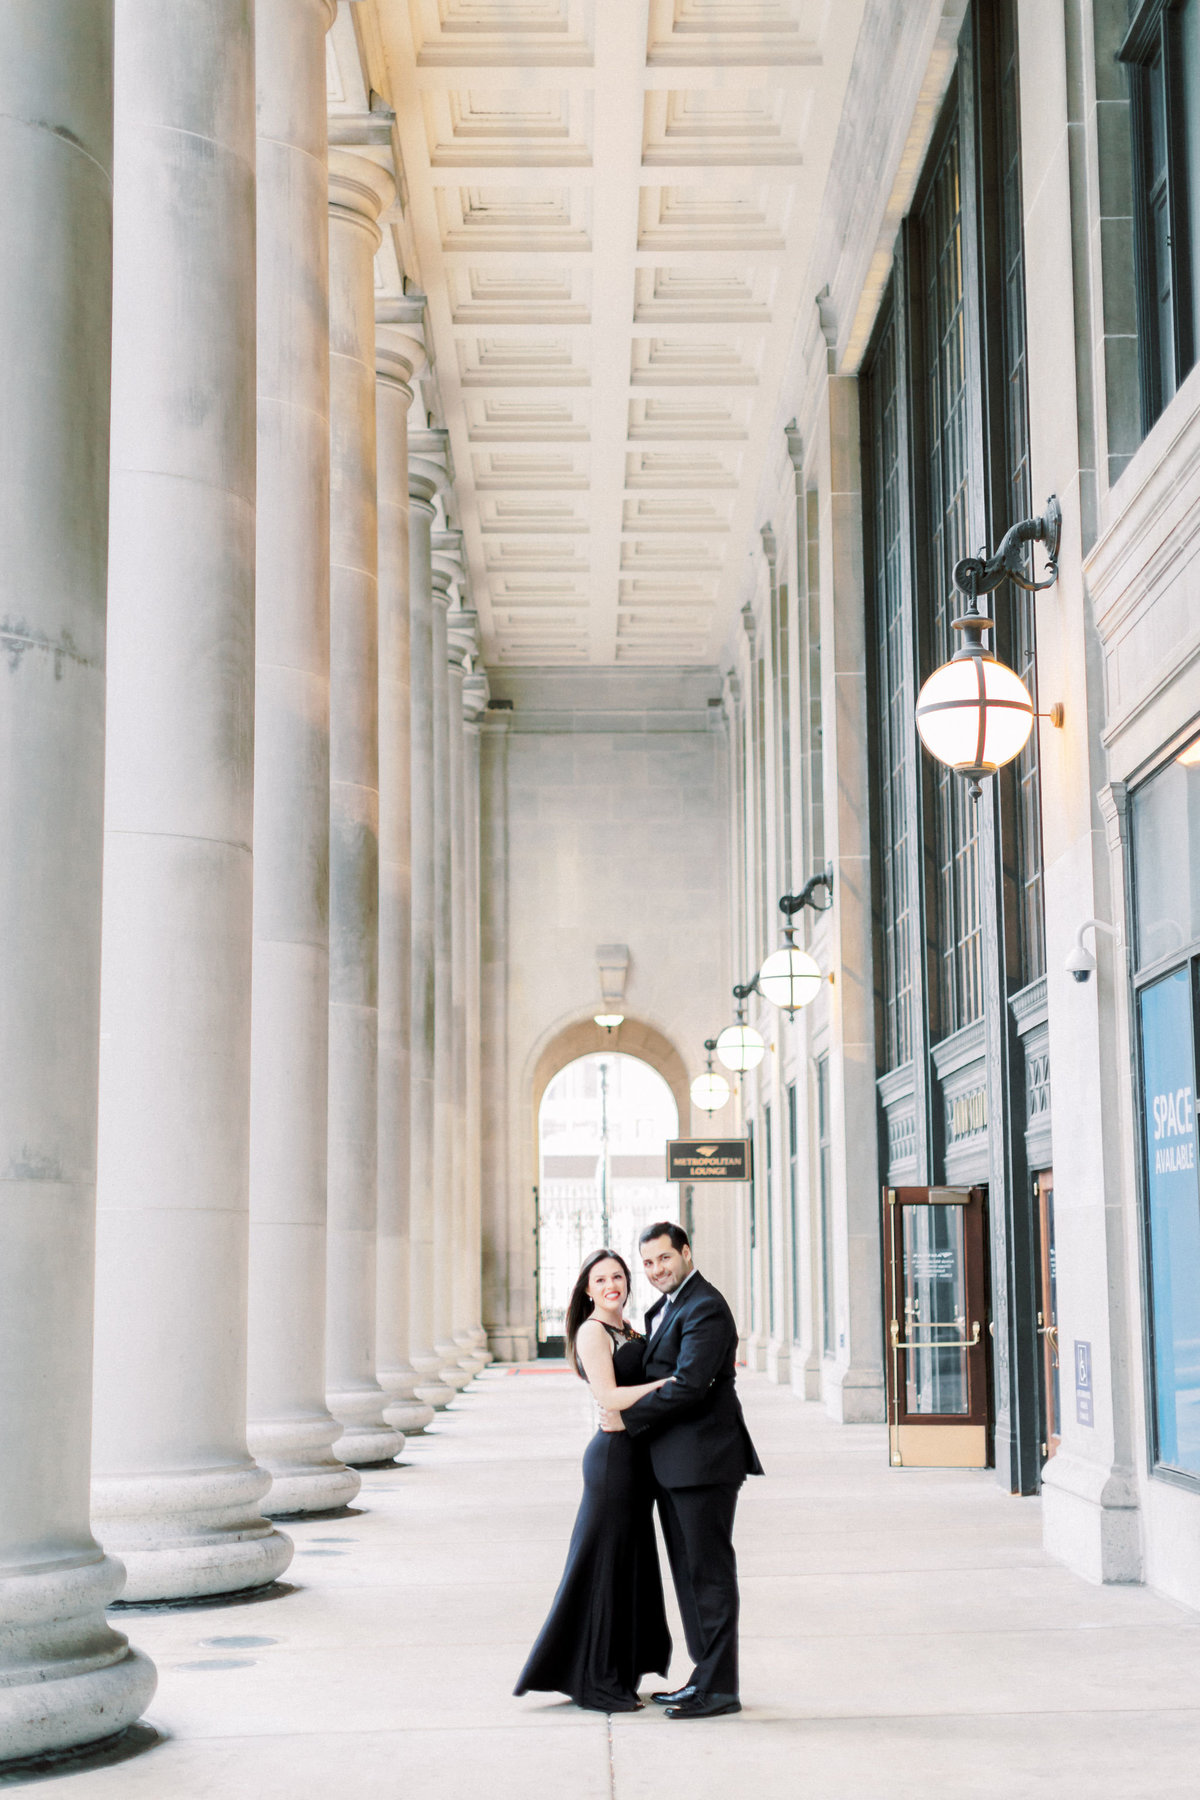 TiffaneyChildsPhotography-ChicagoWeddingPhotographer-Alana+Giancarlo-NorthAvenueBeachUnionStationEngagementSession-69